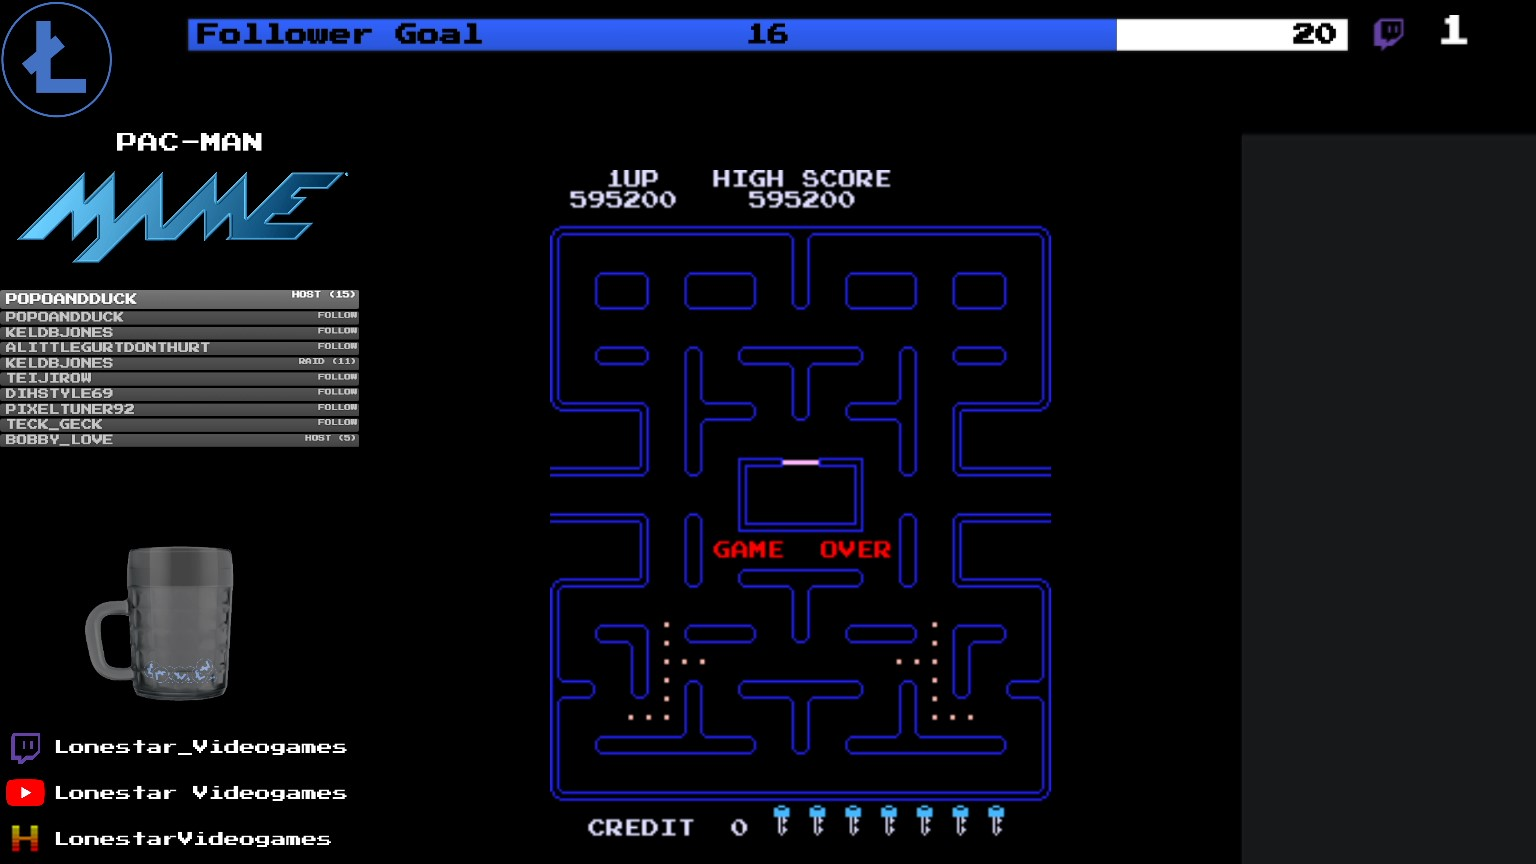 LonestarVideogames: Pac-Man [Turbo] [pacmanf] (Arcade Emulated / M.A.M.E.) 595,200 points on 2020-08-05 19:33:20